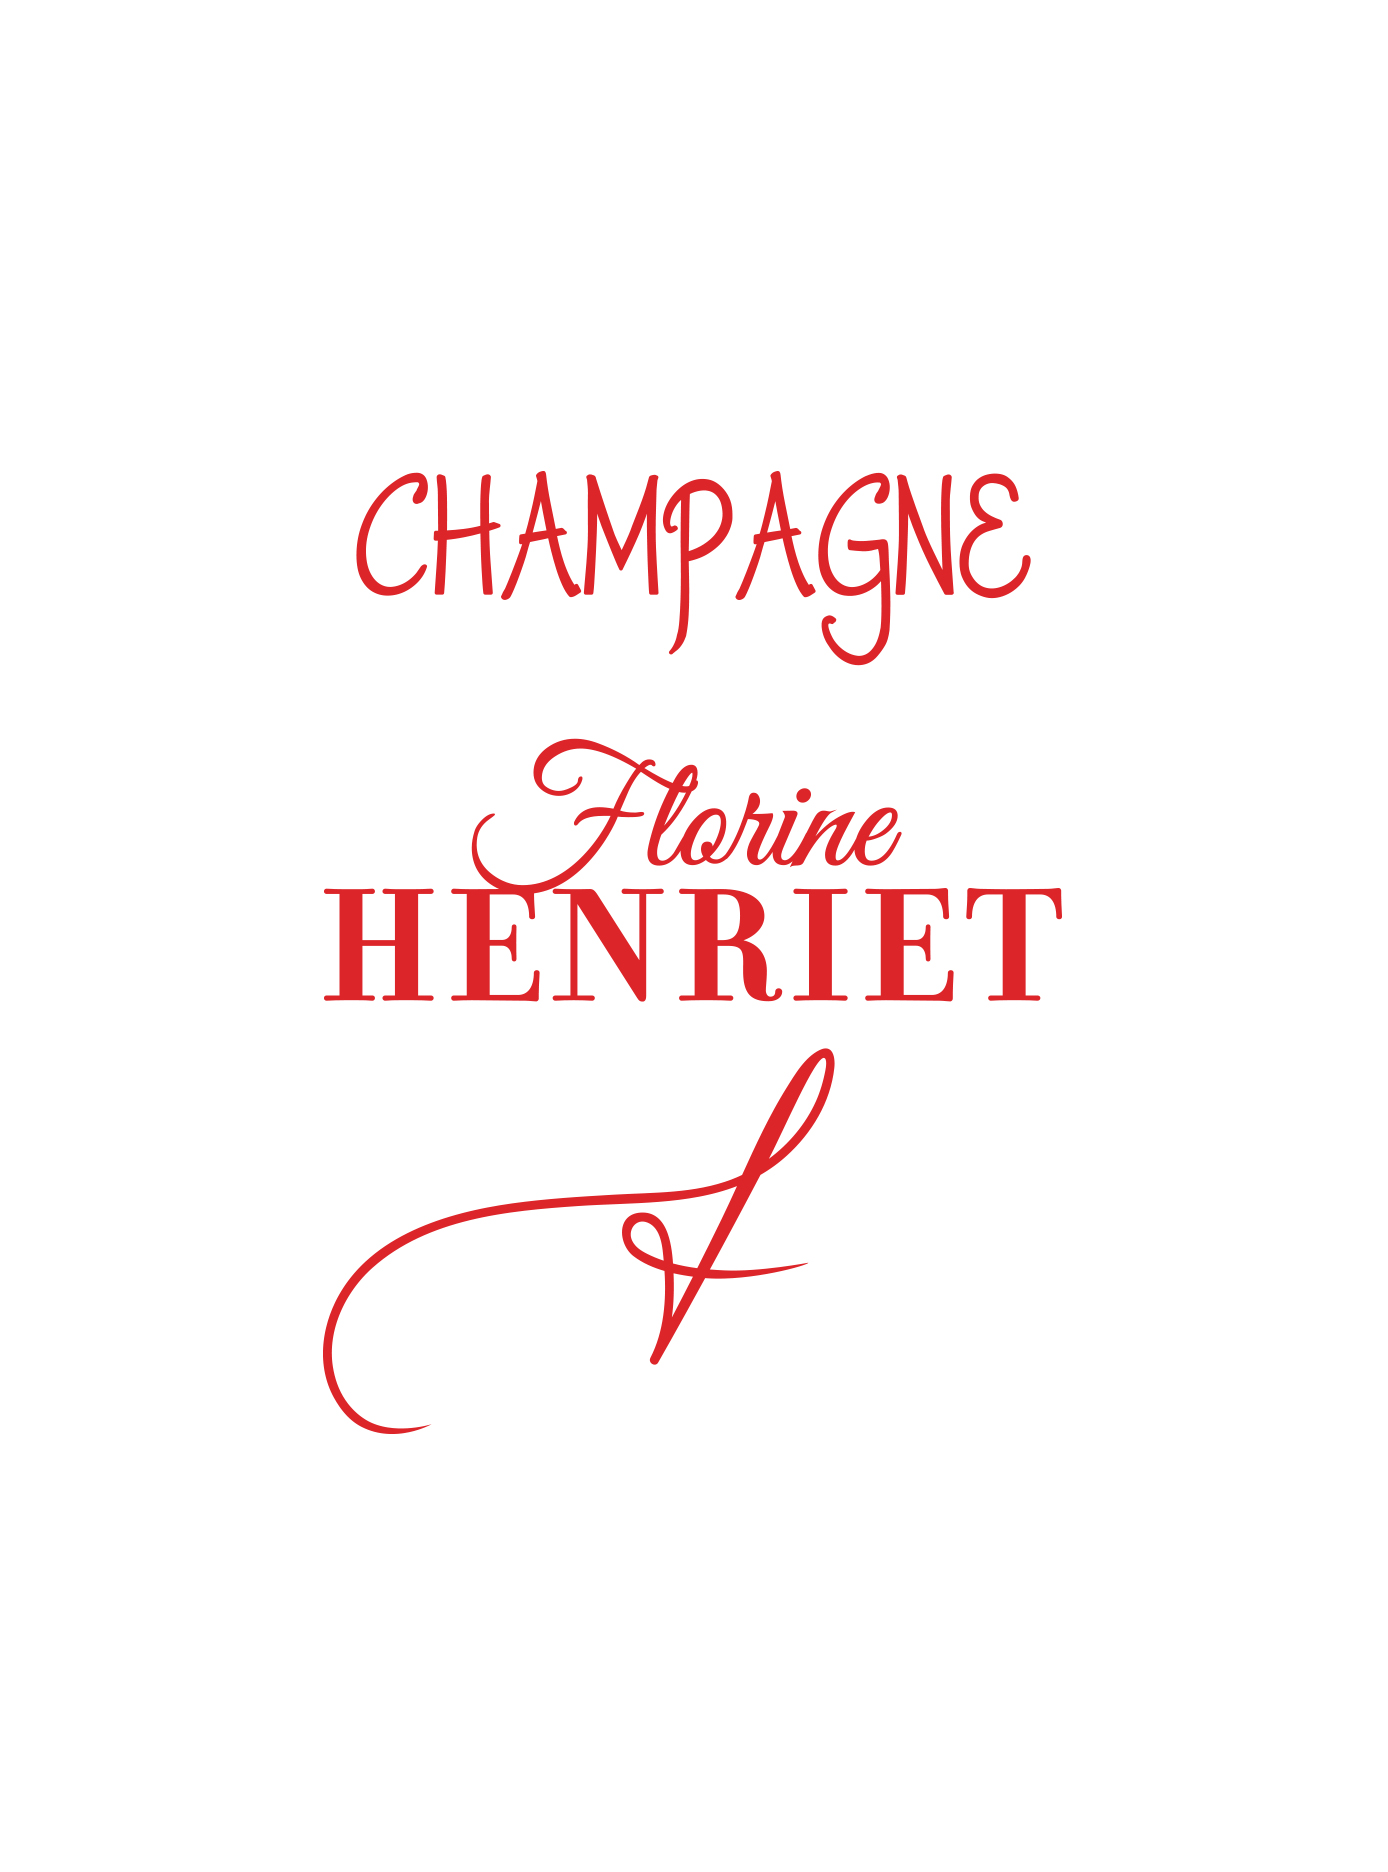 Champagne Florine Henriet packaging